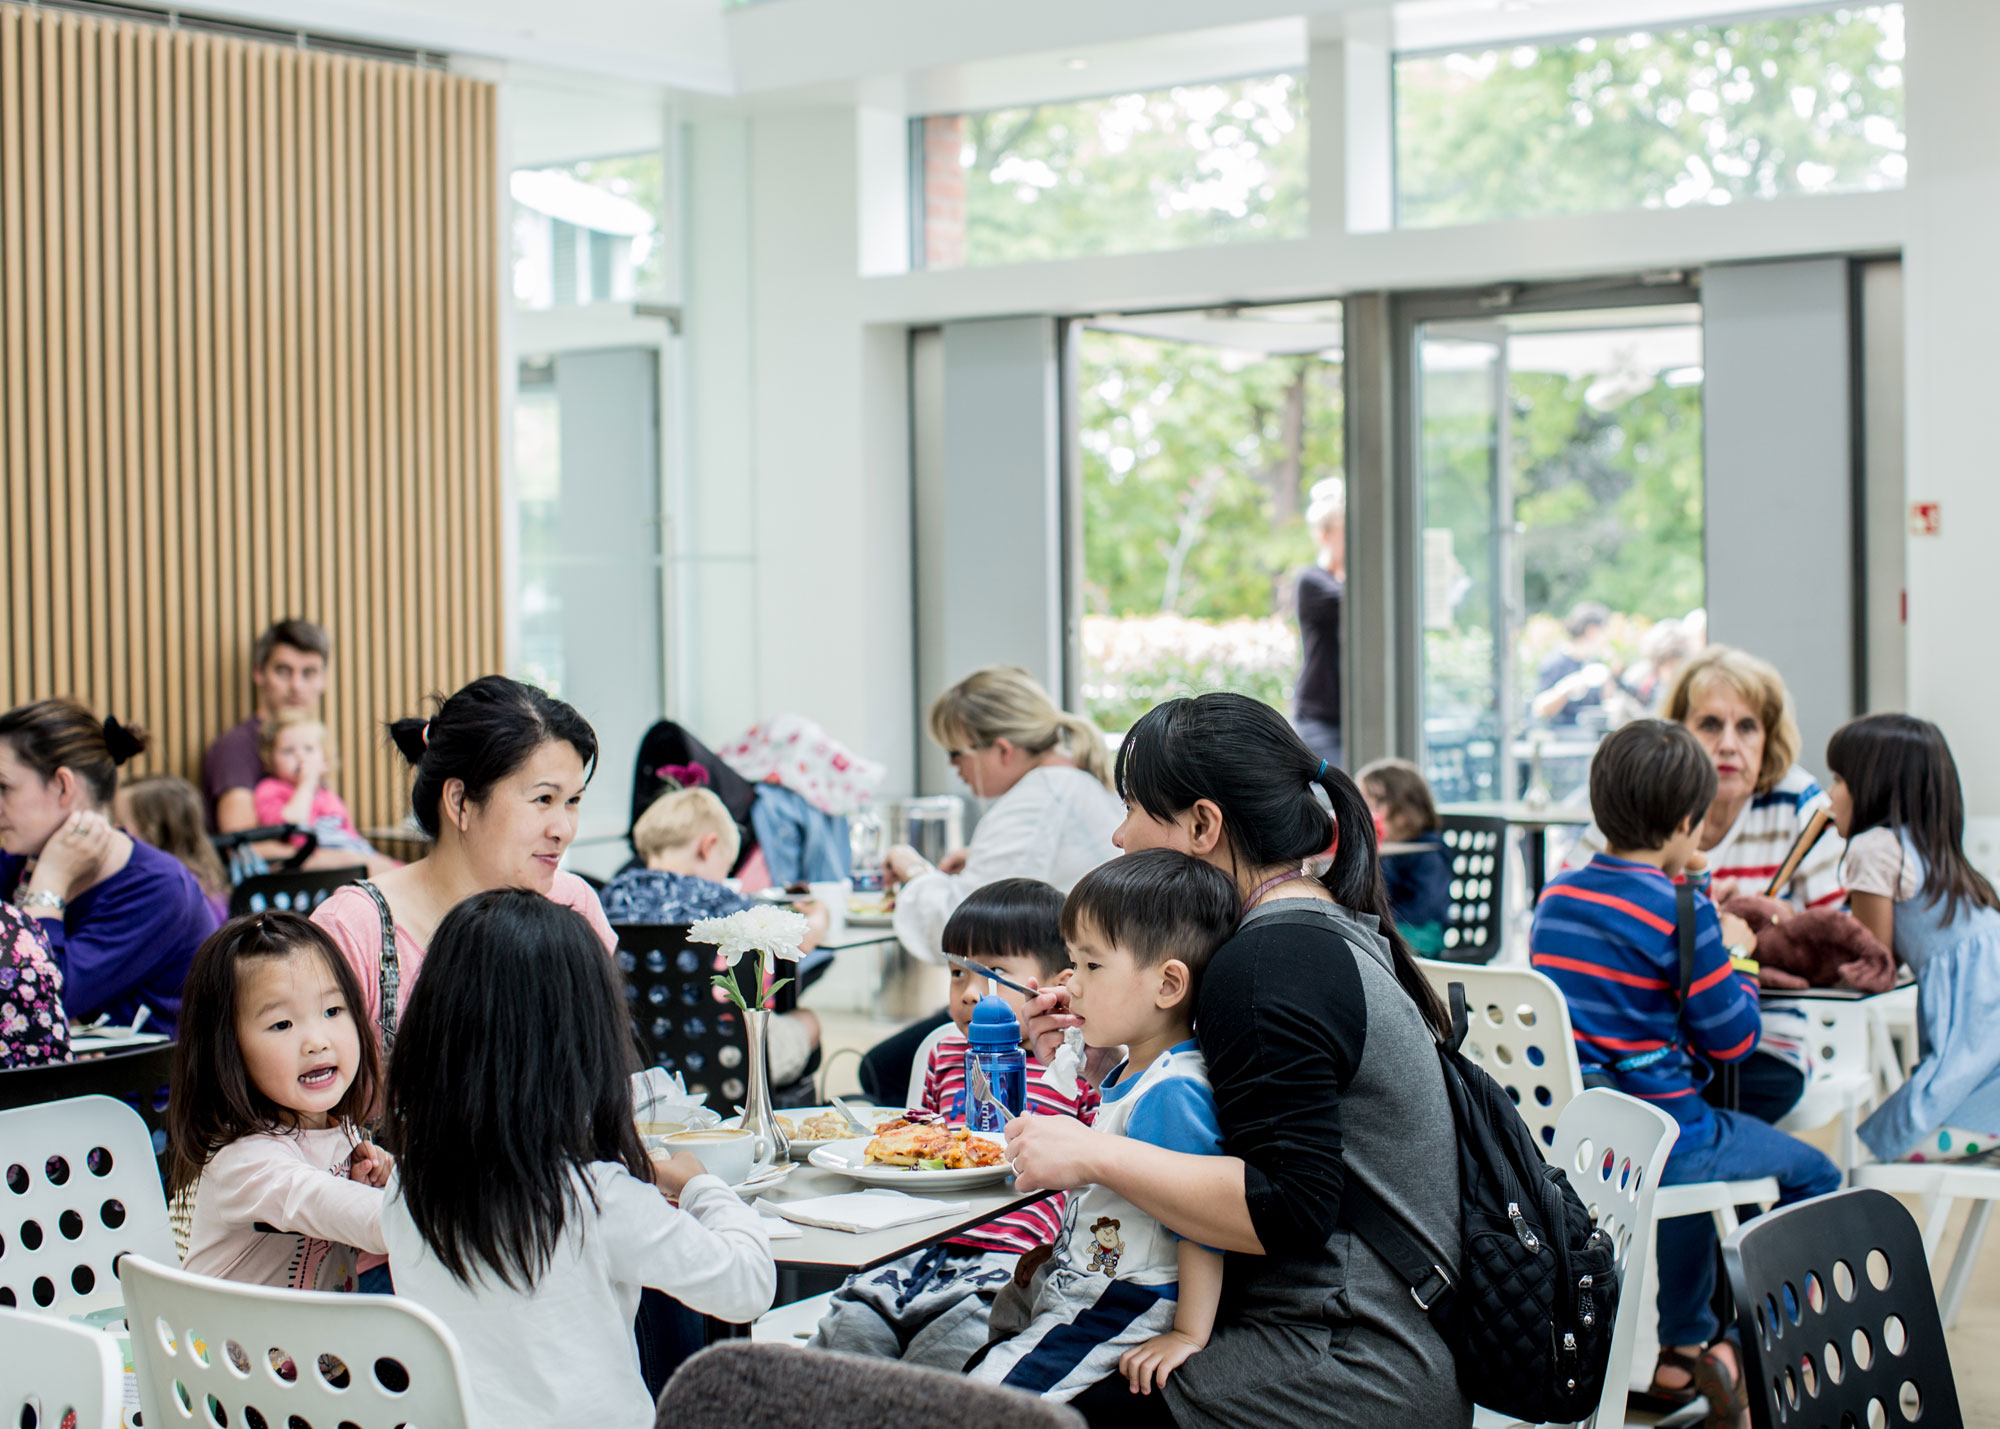 A busy cafe with table and chairs full of adults and children eating. The space is light and airy with glass walls.